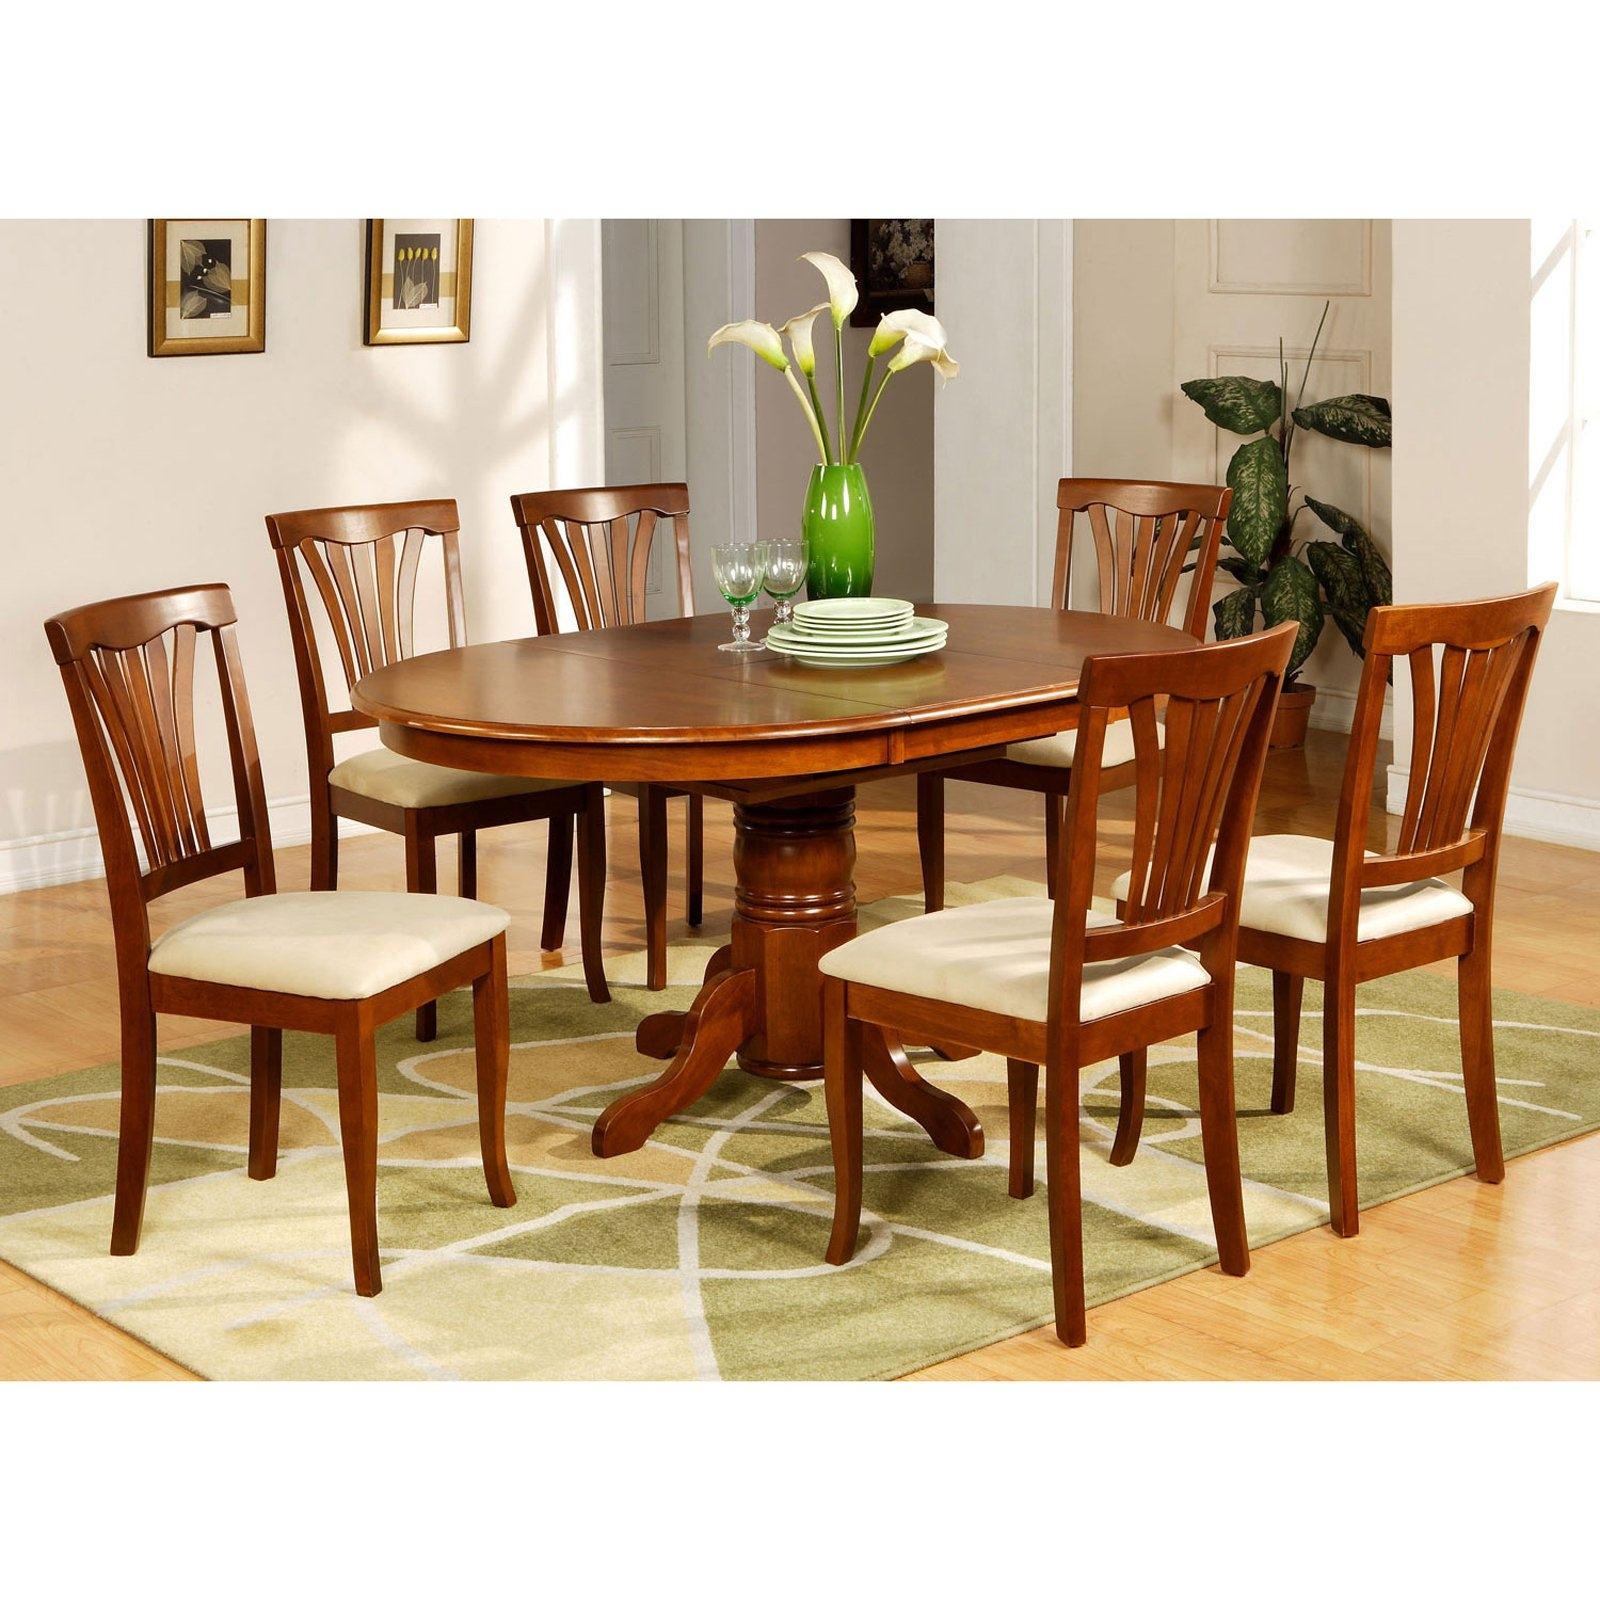 East West Furniture AVON7-SBR-C 7PC Oval Dining Set with Single Pedestal with & Oval Dining Table Set For 6 - Foter